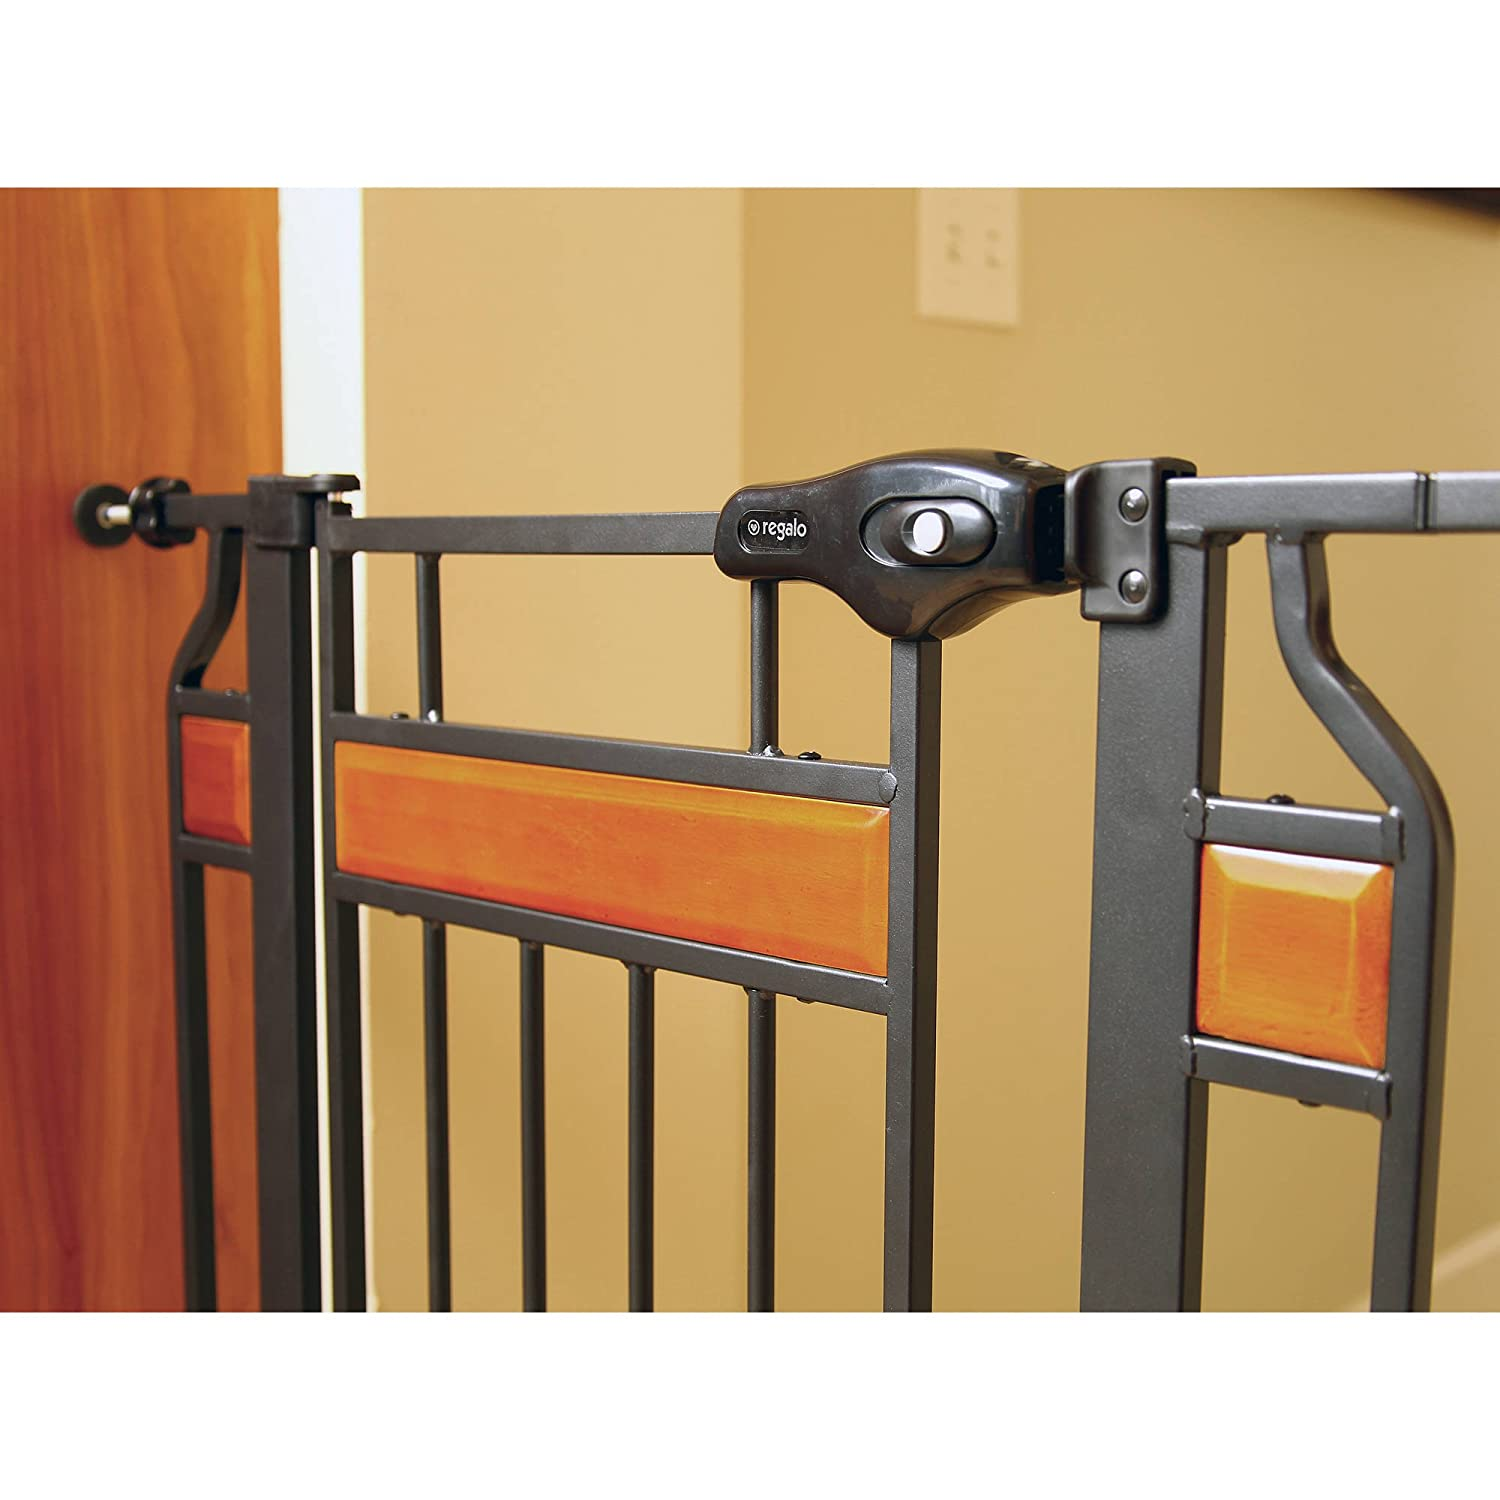 Amazon.com: Regalo Home Accents Extra Tall and Wide Walk Thru Gate ...